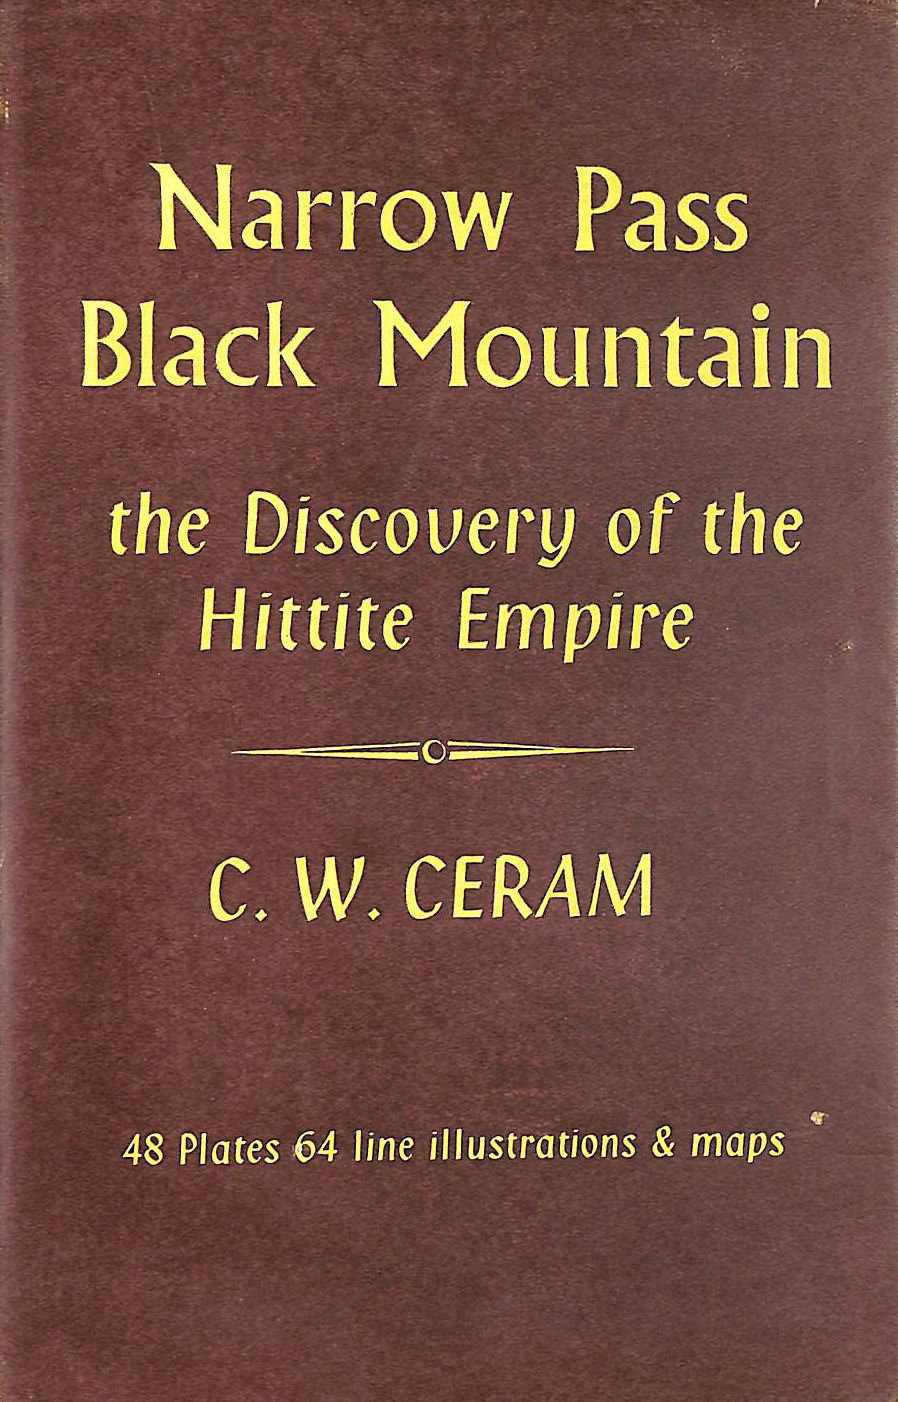 Image for Narrow Pass, Black Mountain: The Discovery Of The Hittite Empire